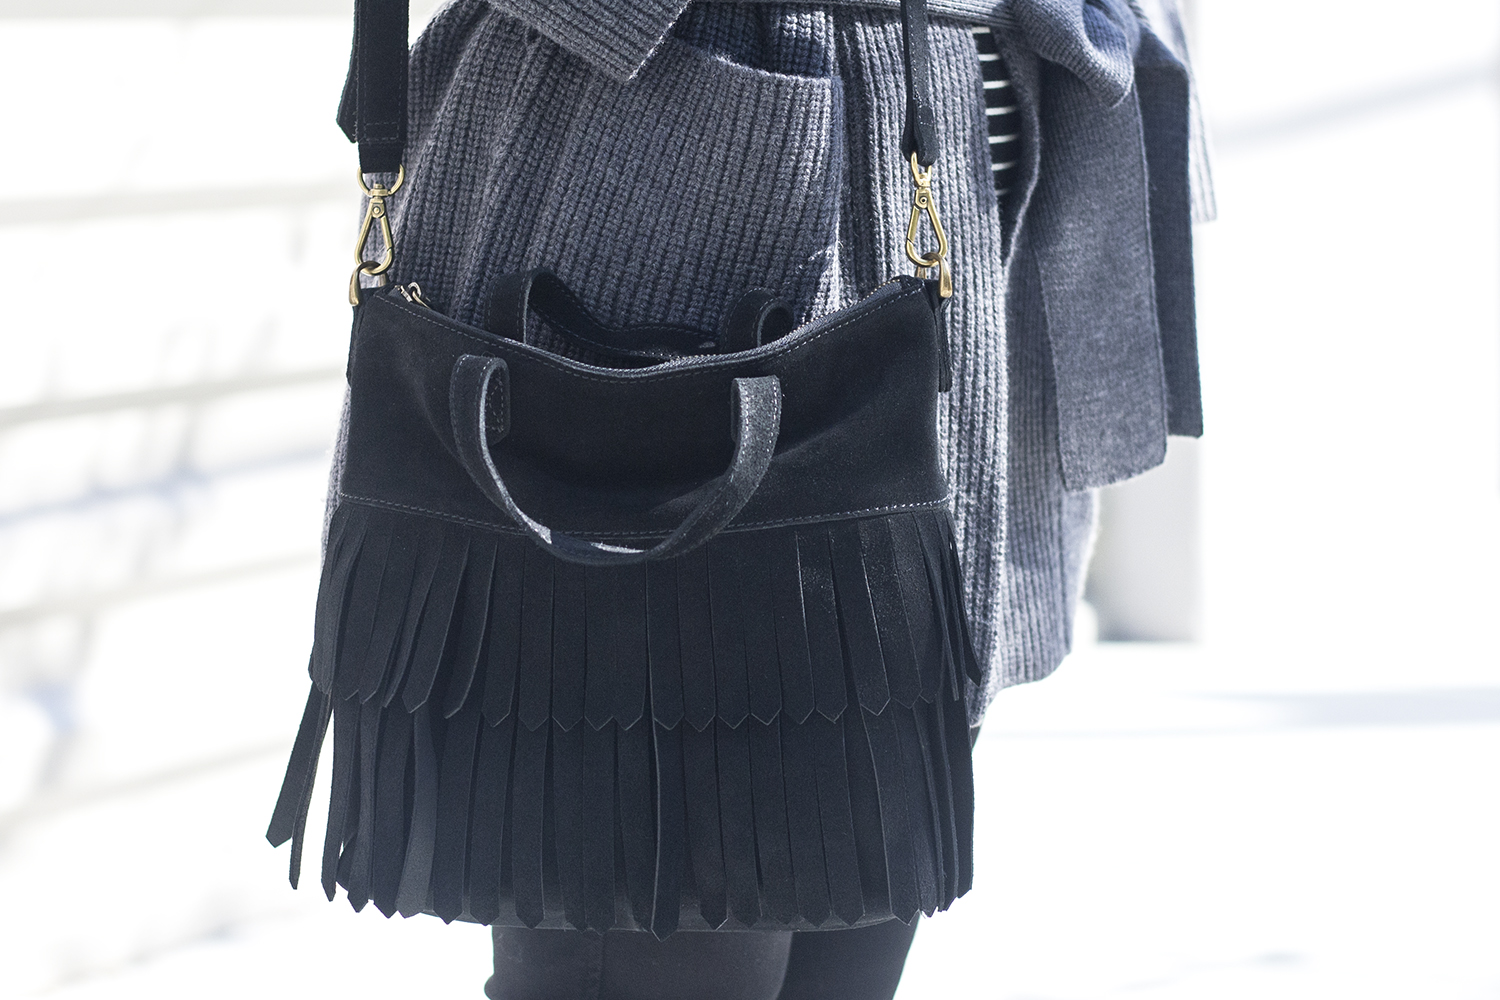 03madewell-suede-leather-fringes-tote-bag-fall-style-fashion